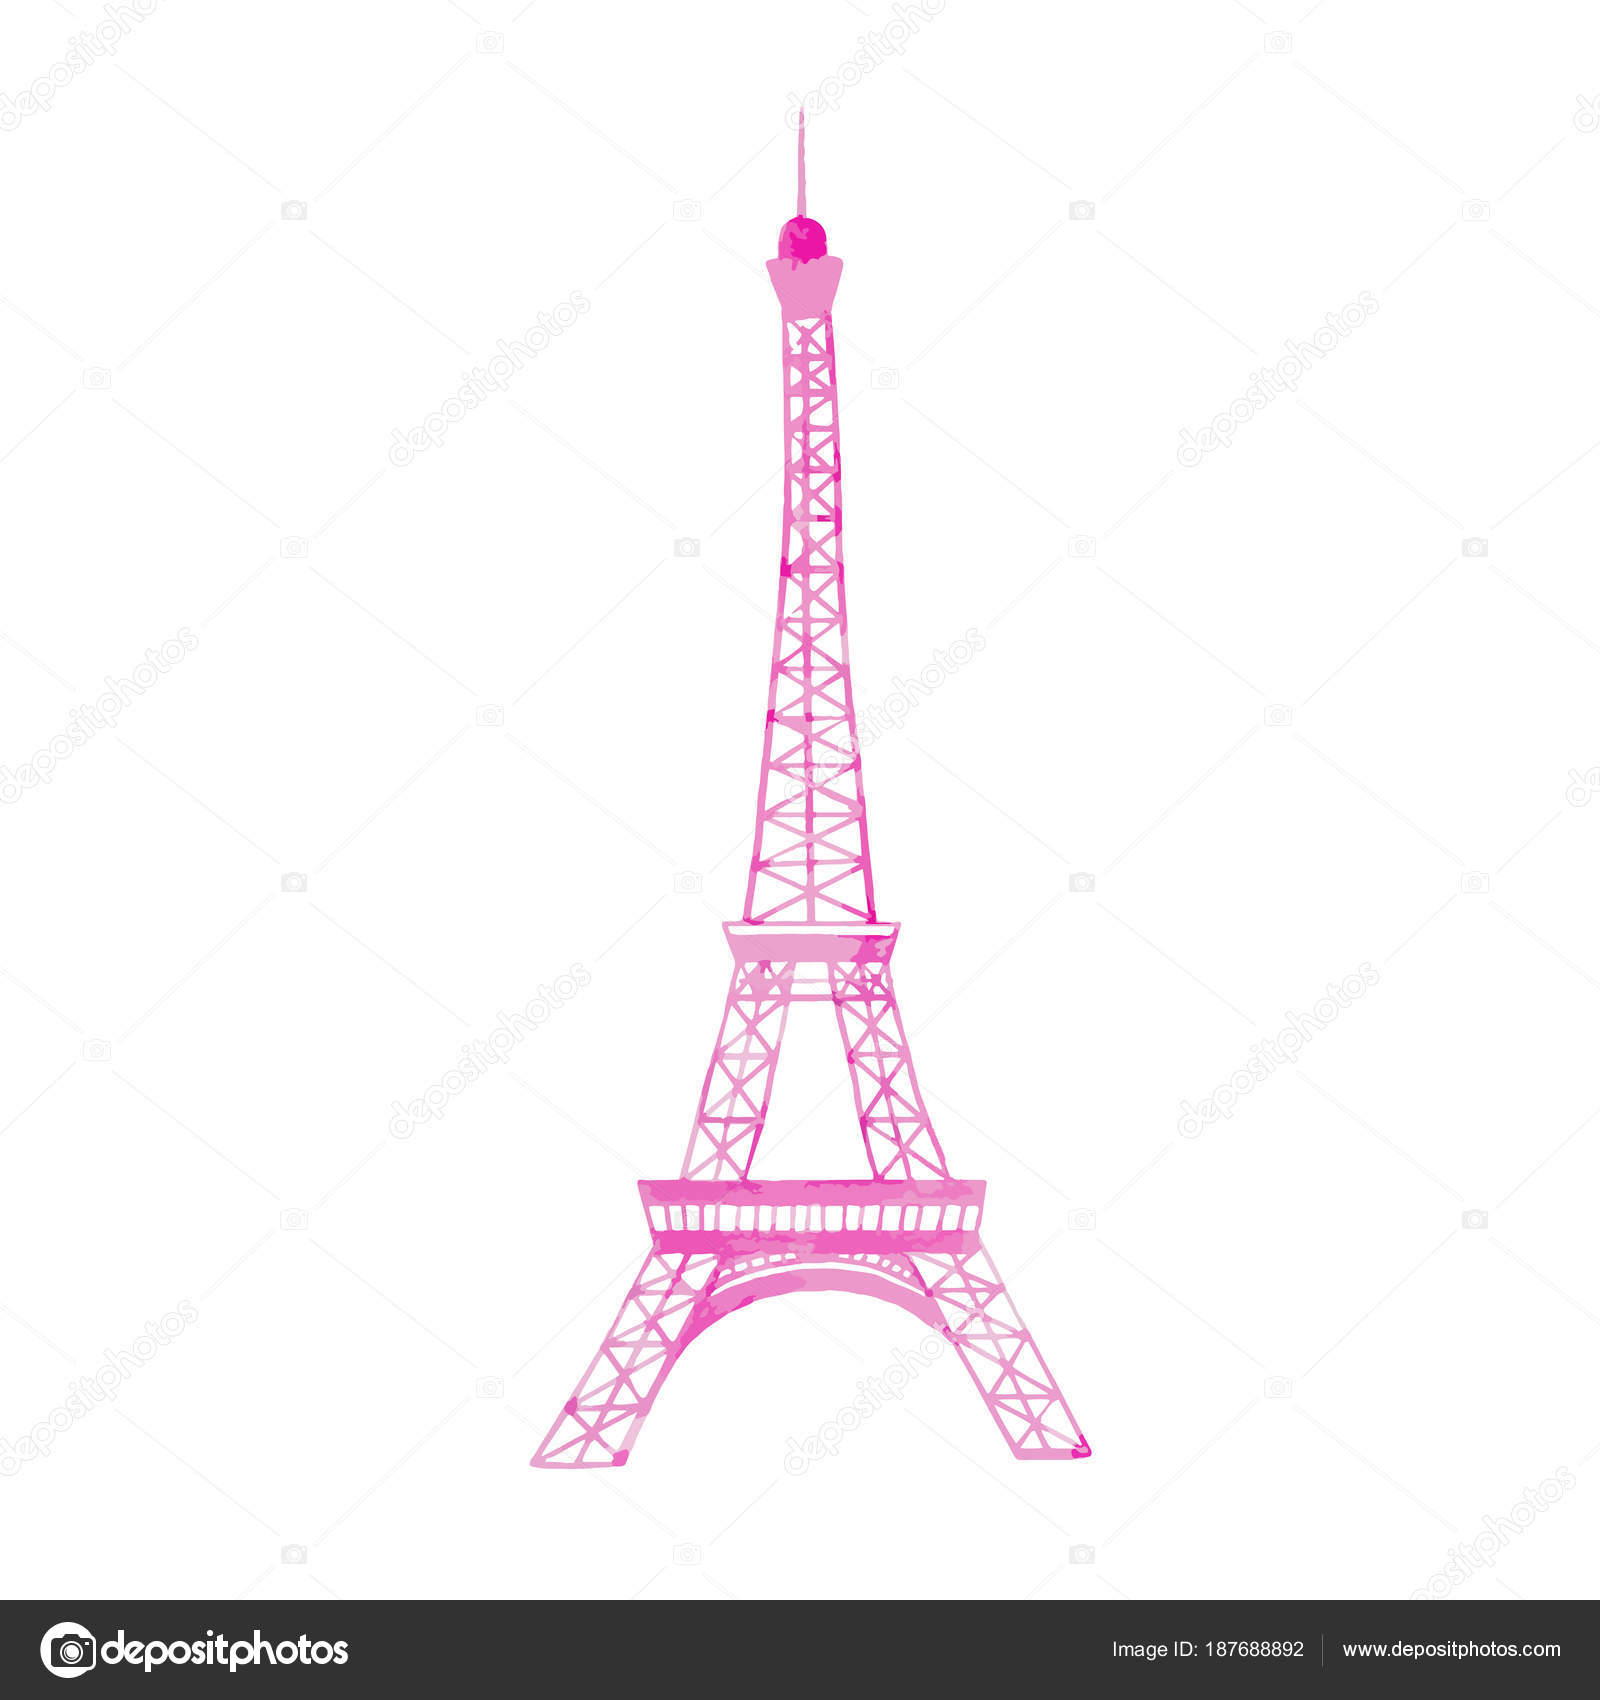 Watercolor vector eiffel tower stock vector zeninaasya 187688892 beautiful vector illustration with watercolor hand drawn eiffel tower in paris france vector by zeninaasya thecheapjerseys Gallery